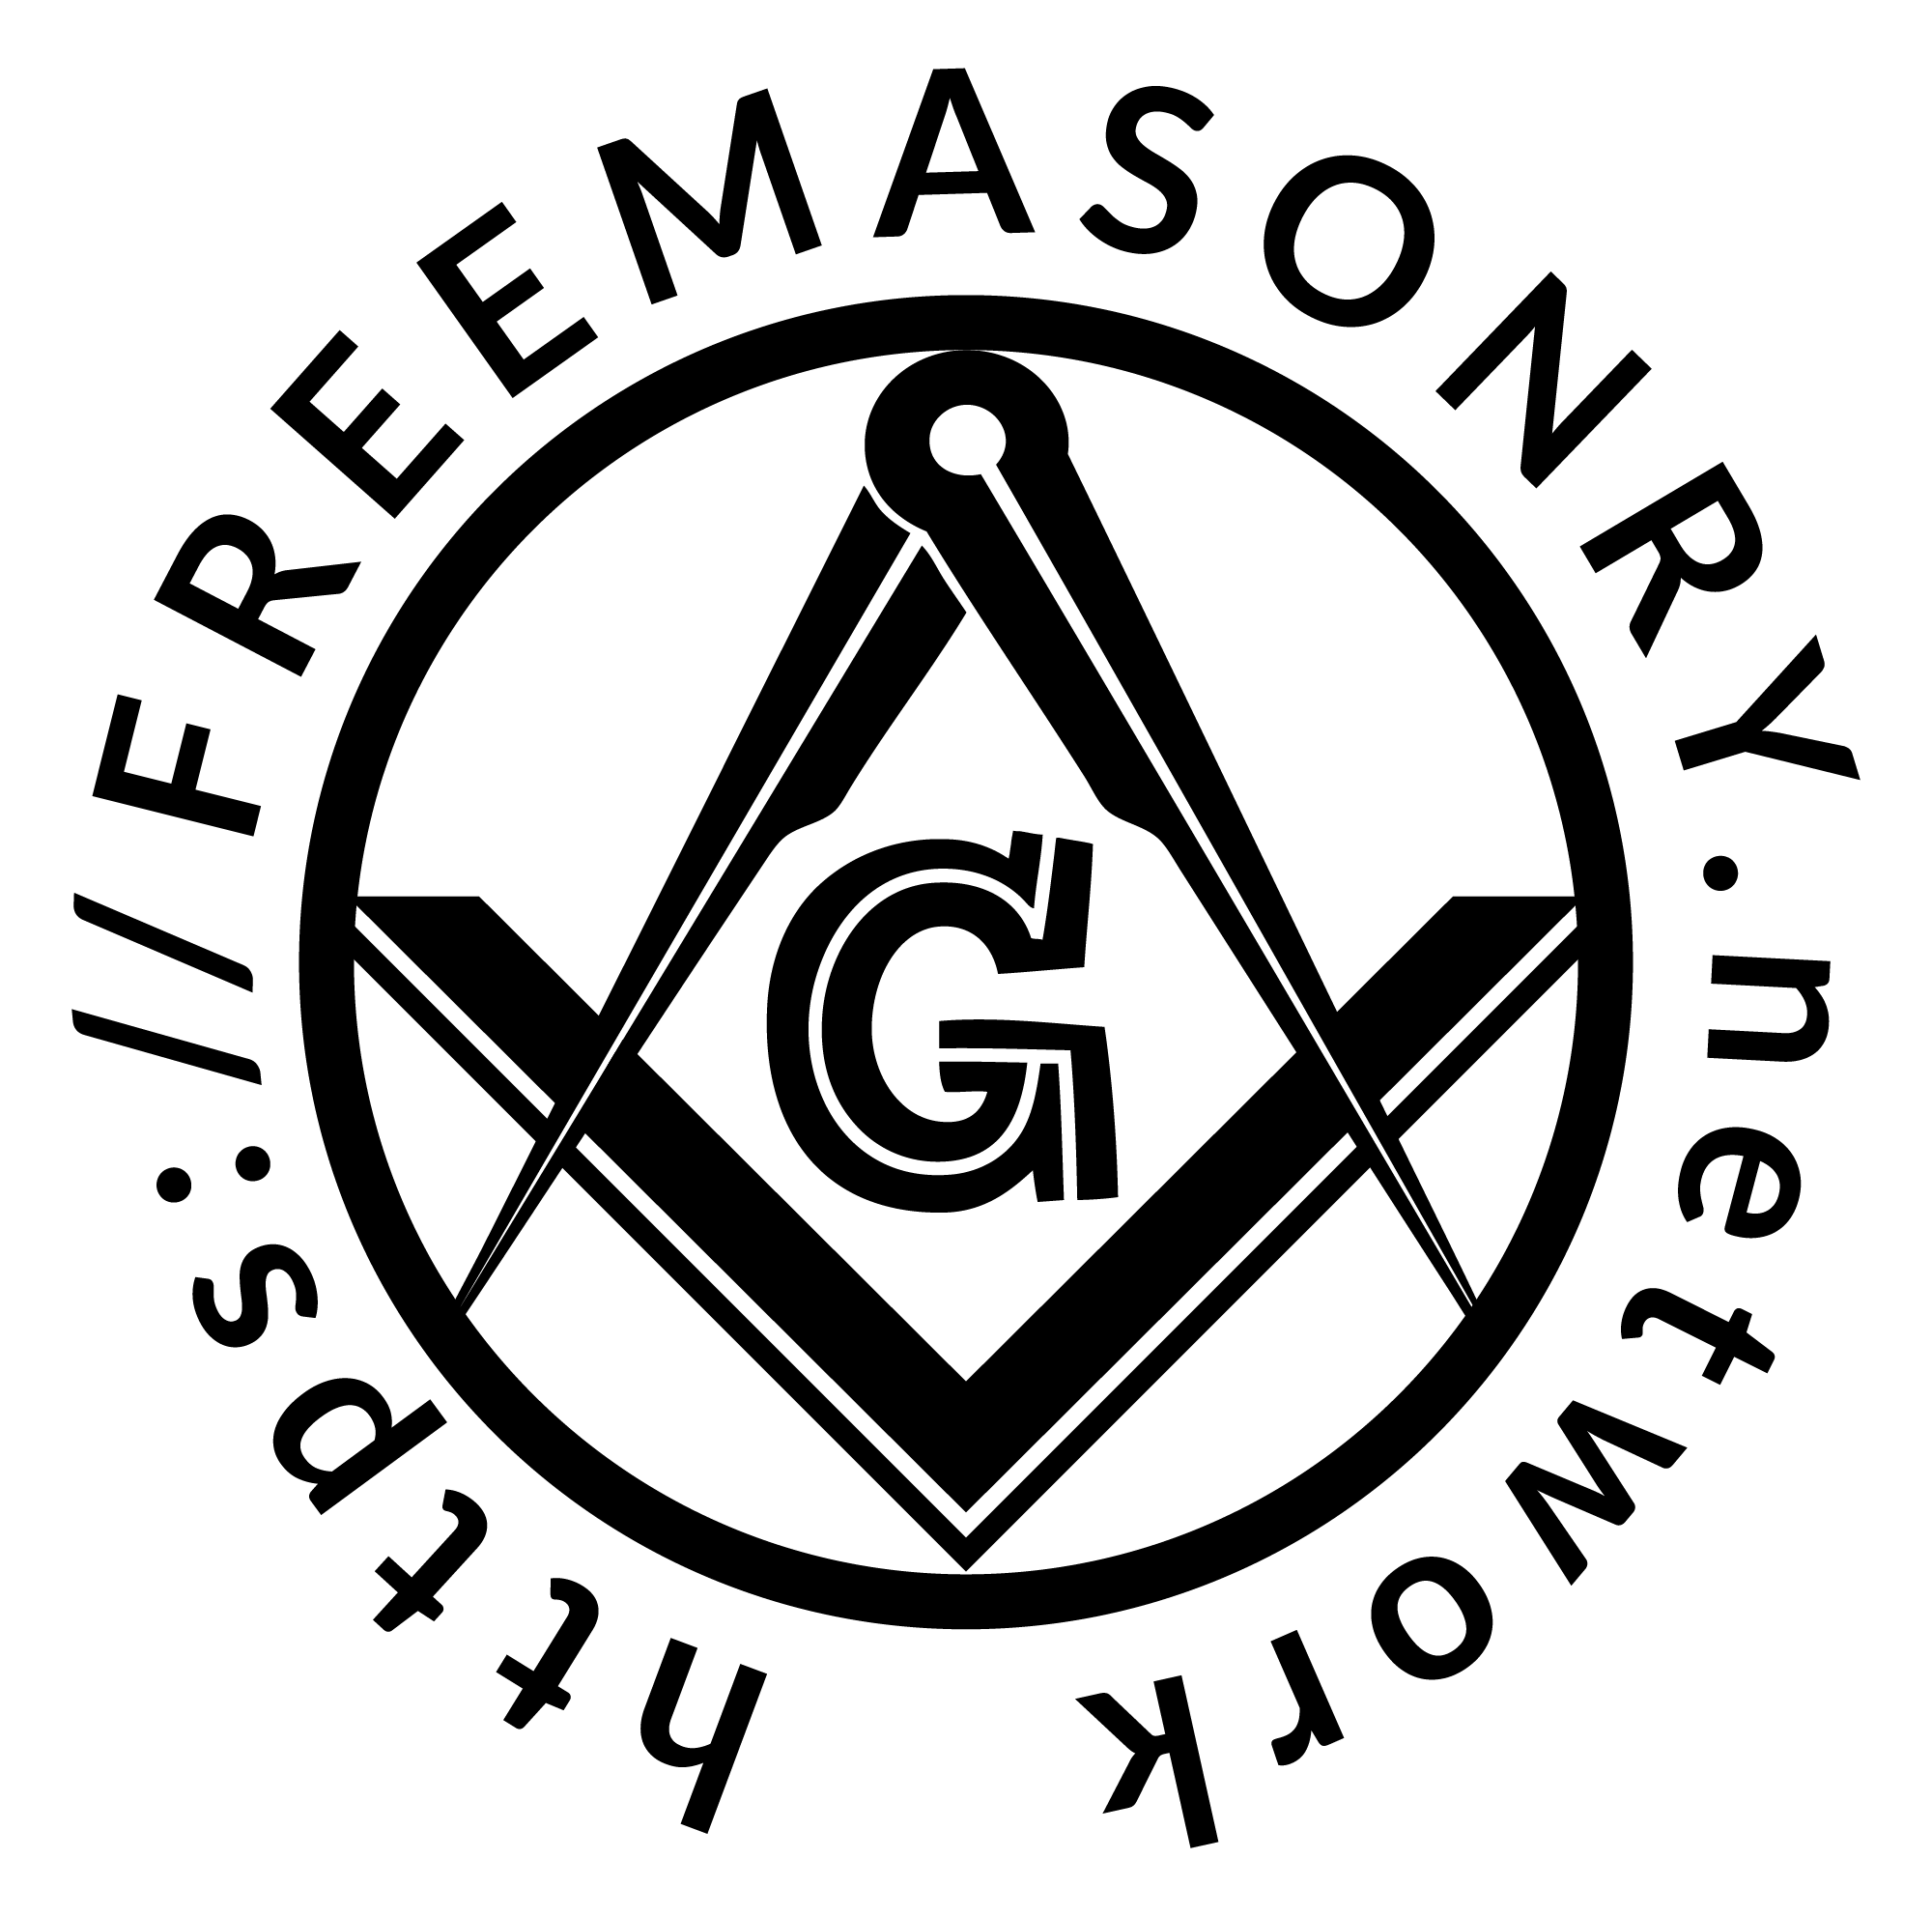 SUCCESSES AND FAILURES OF THE WORSHIPFUL MASTER